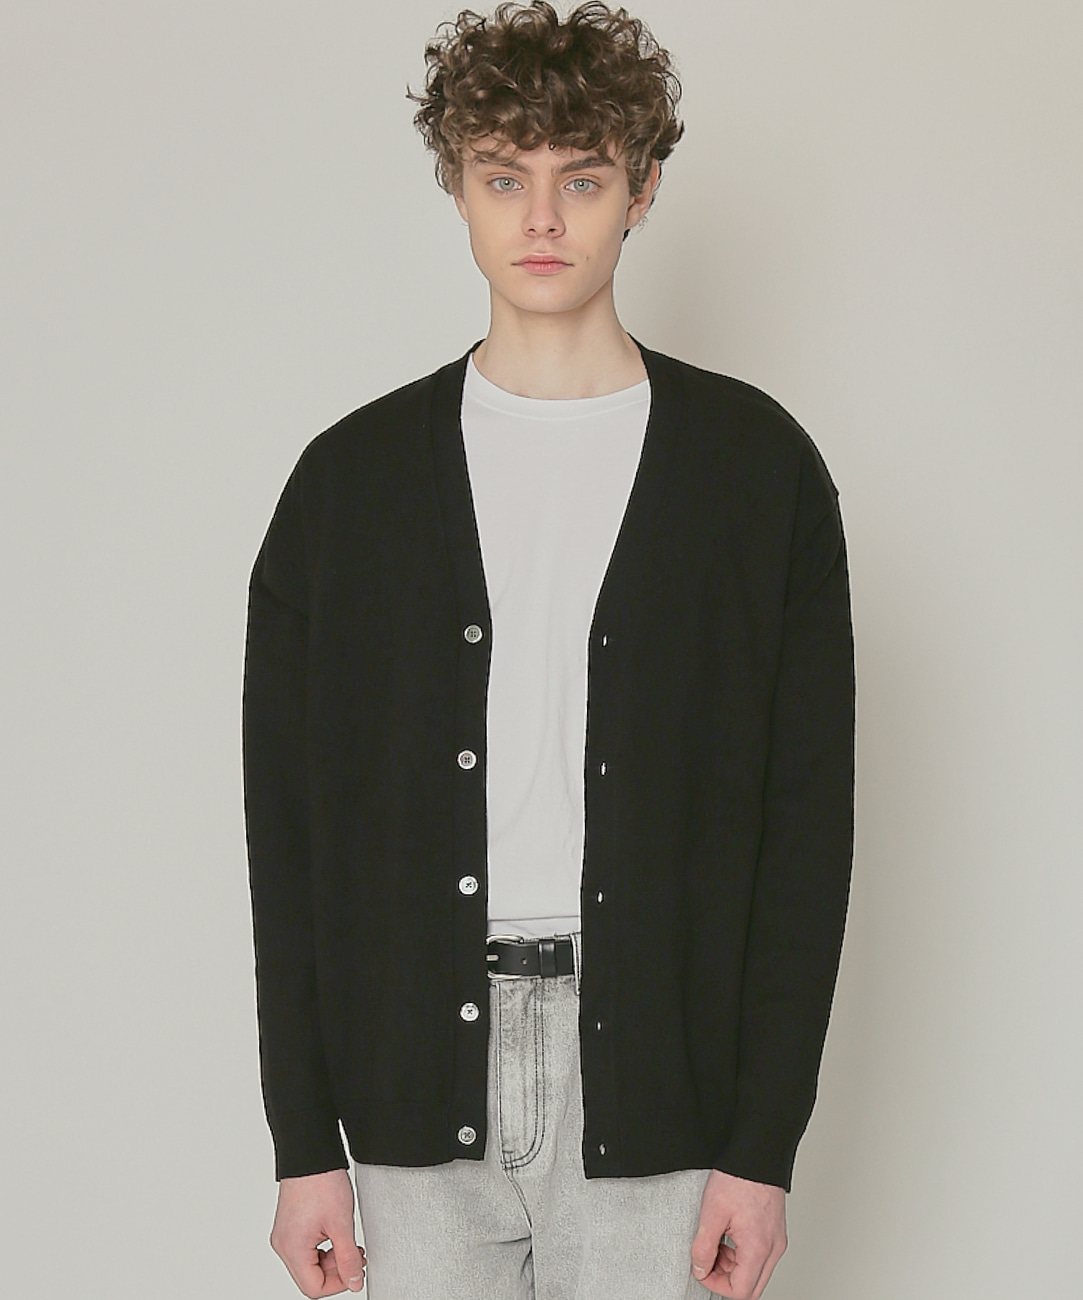 DWS SOFT BASIC CARDIGAN(BLACK)